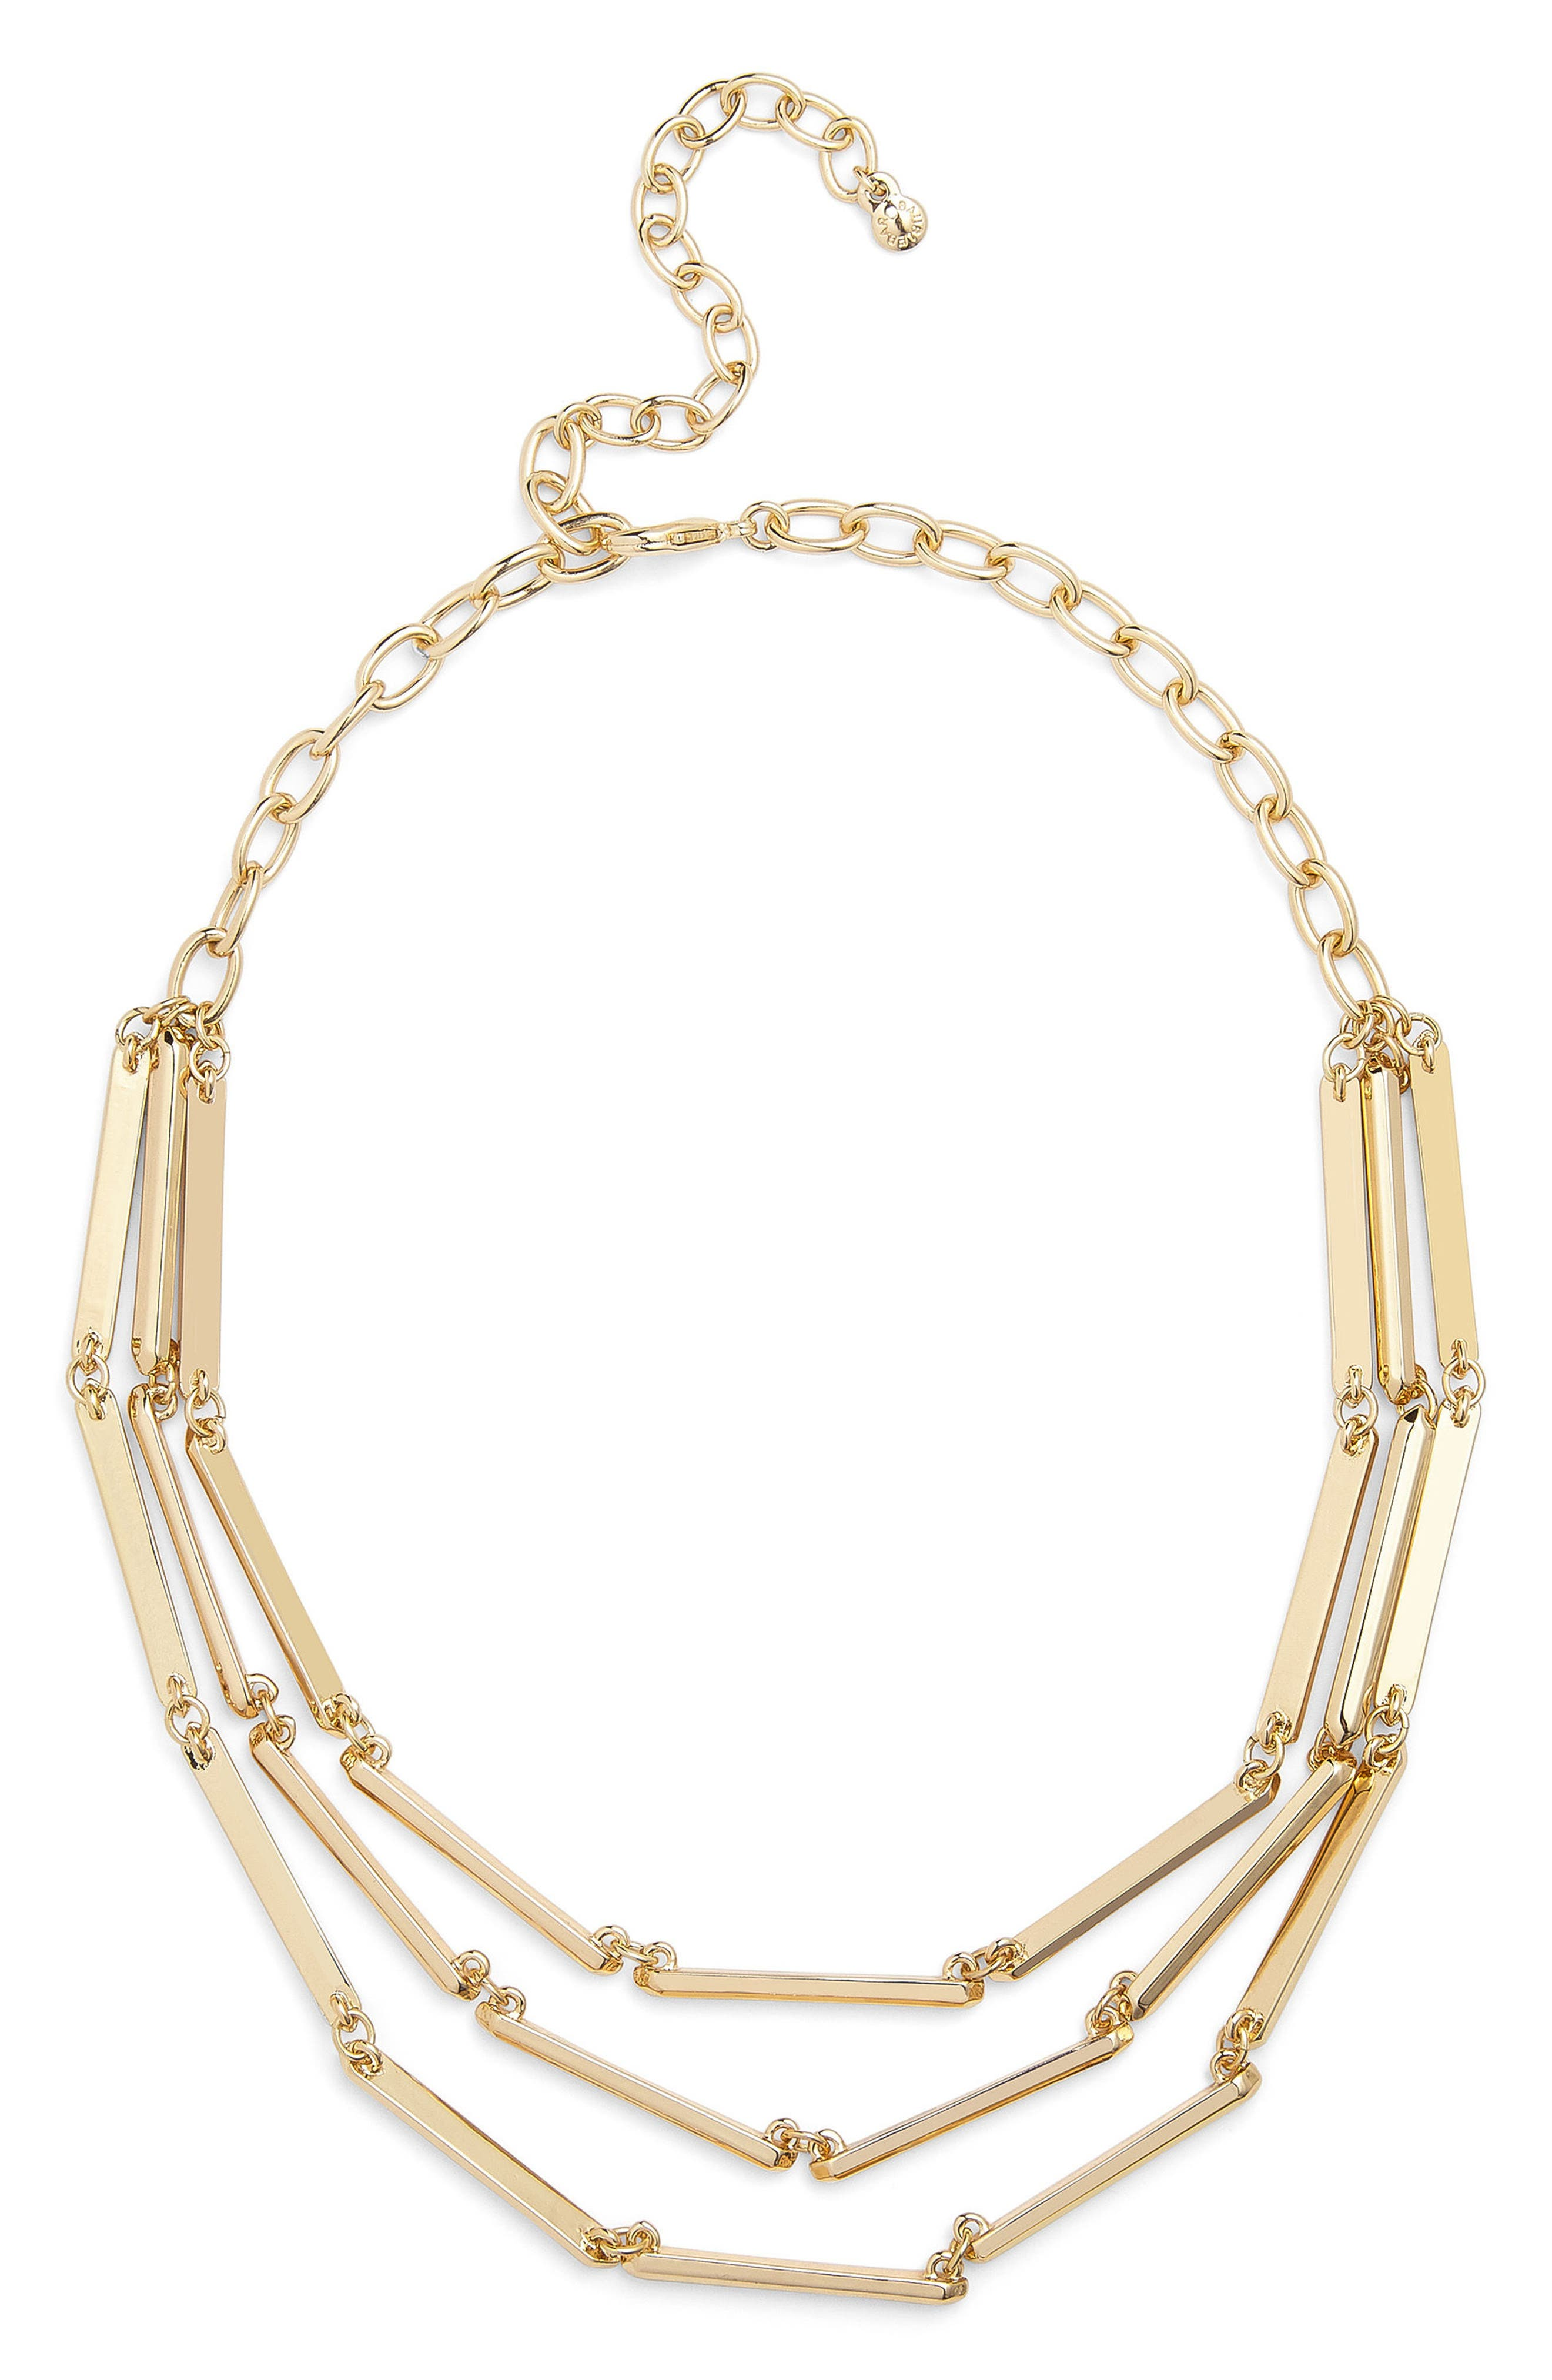 Payla Multistrand Necklace,                             Main thumbnail 1, color,                             714